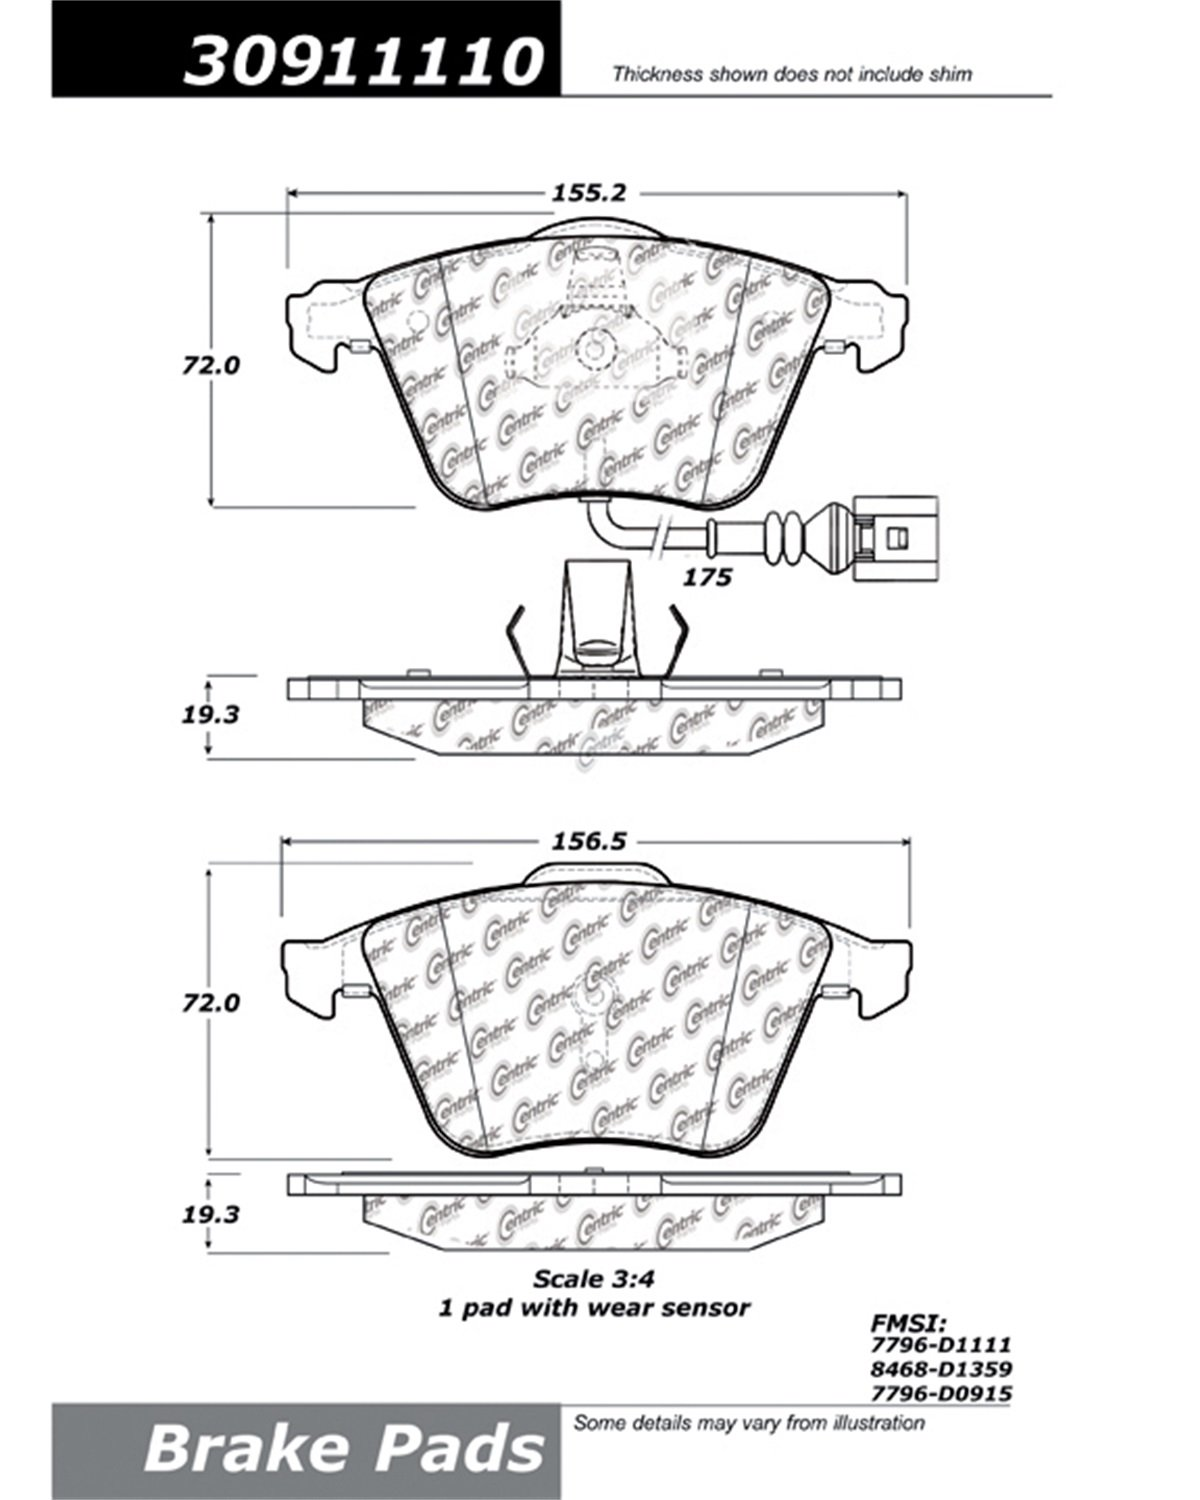 StopTech 309.11110 Street Performance Front Brake Pad